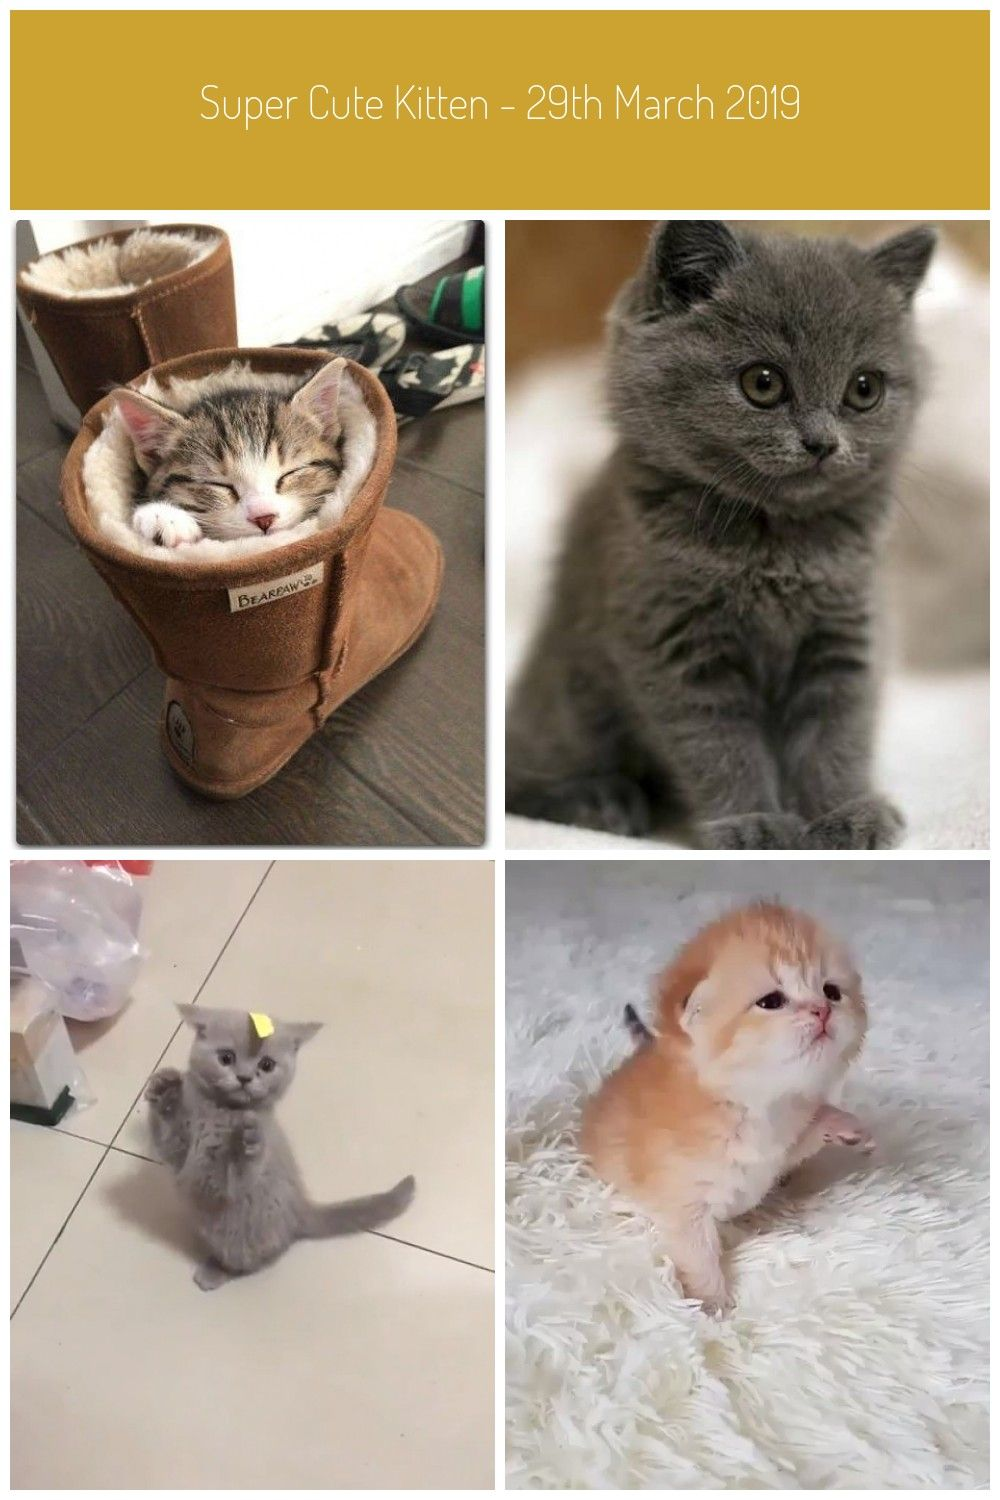 40 So Cute Kittens That Youll Want To Cuddle Them Forever H3rcom Impressive Strange Funny Cute Kittens Kittens Cutest Super Cute Kittens Kittens